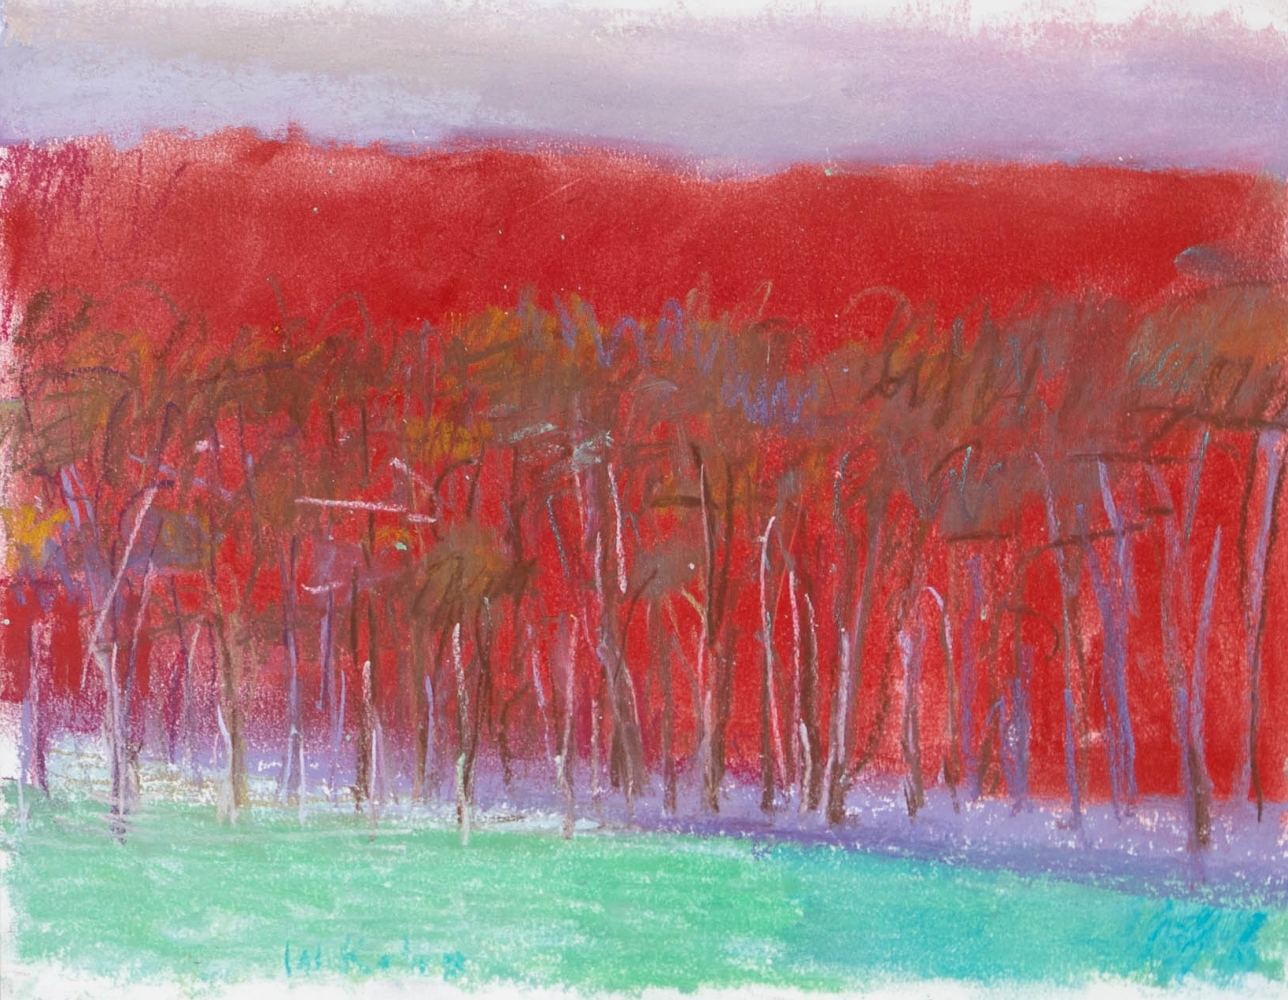 Wolf Kahn, A Special Red, 1994, Pastel on paper, 11 x 14 inches, Wolf Kahn Pastels for sale, Wolf Kahn Trees